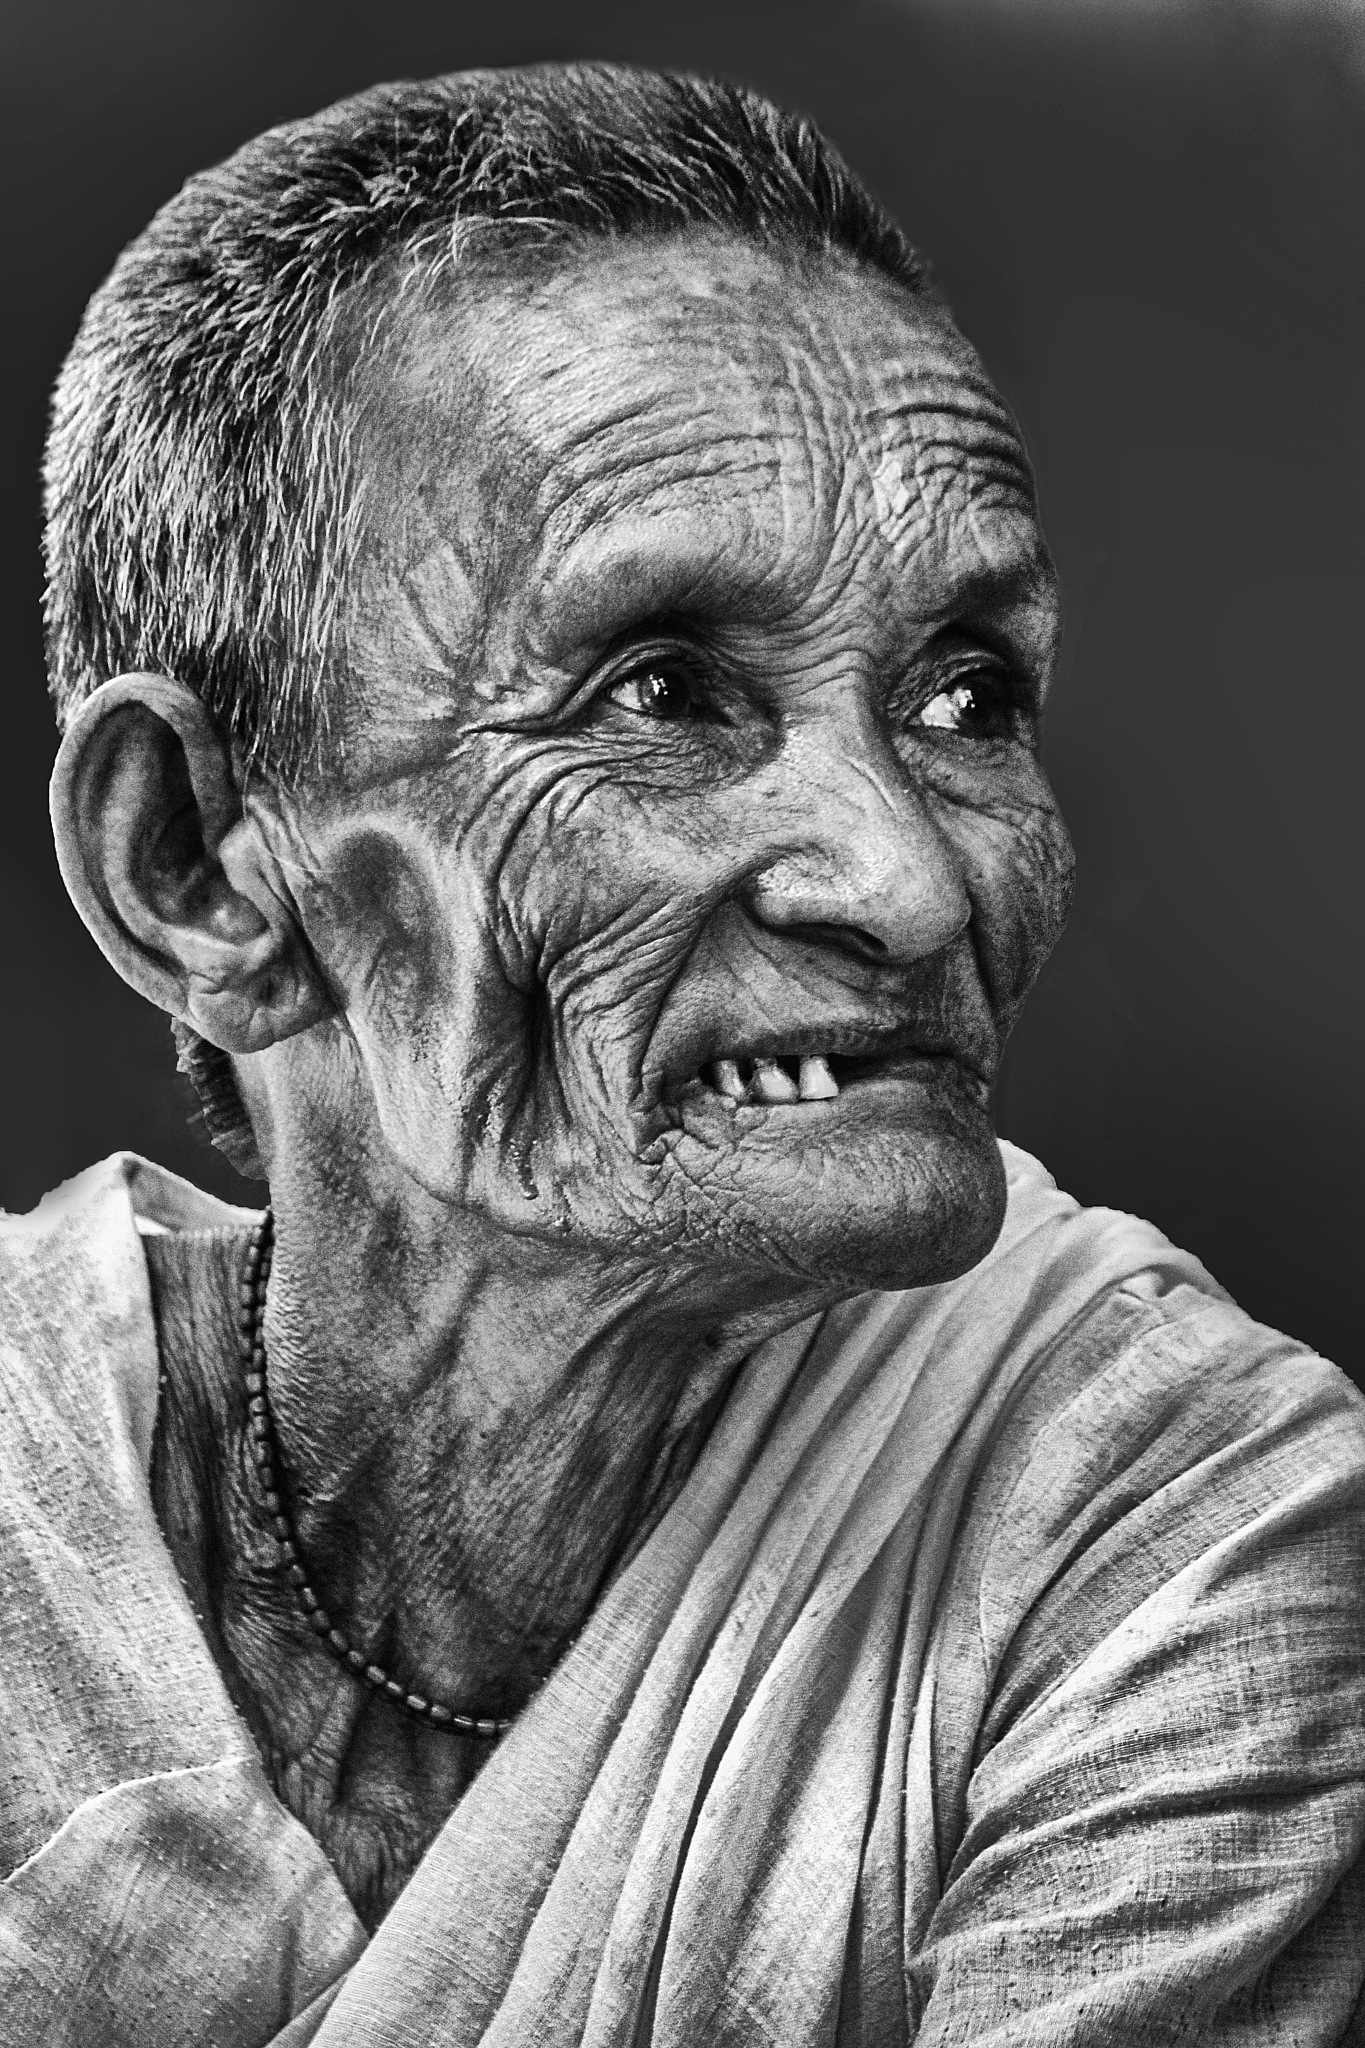 Wrinkles of Experience by ParthaChakraborty